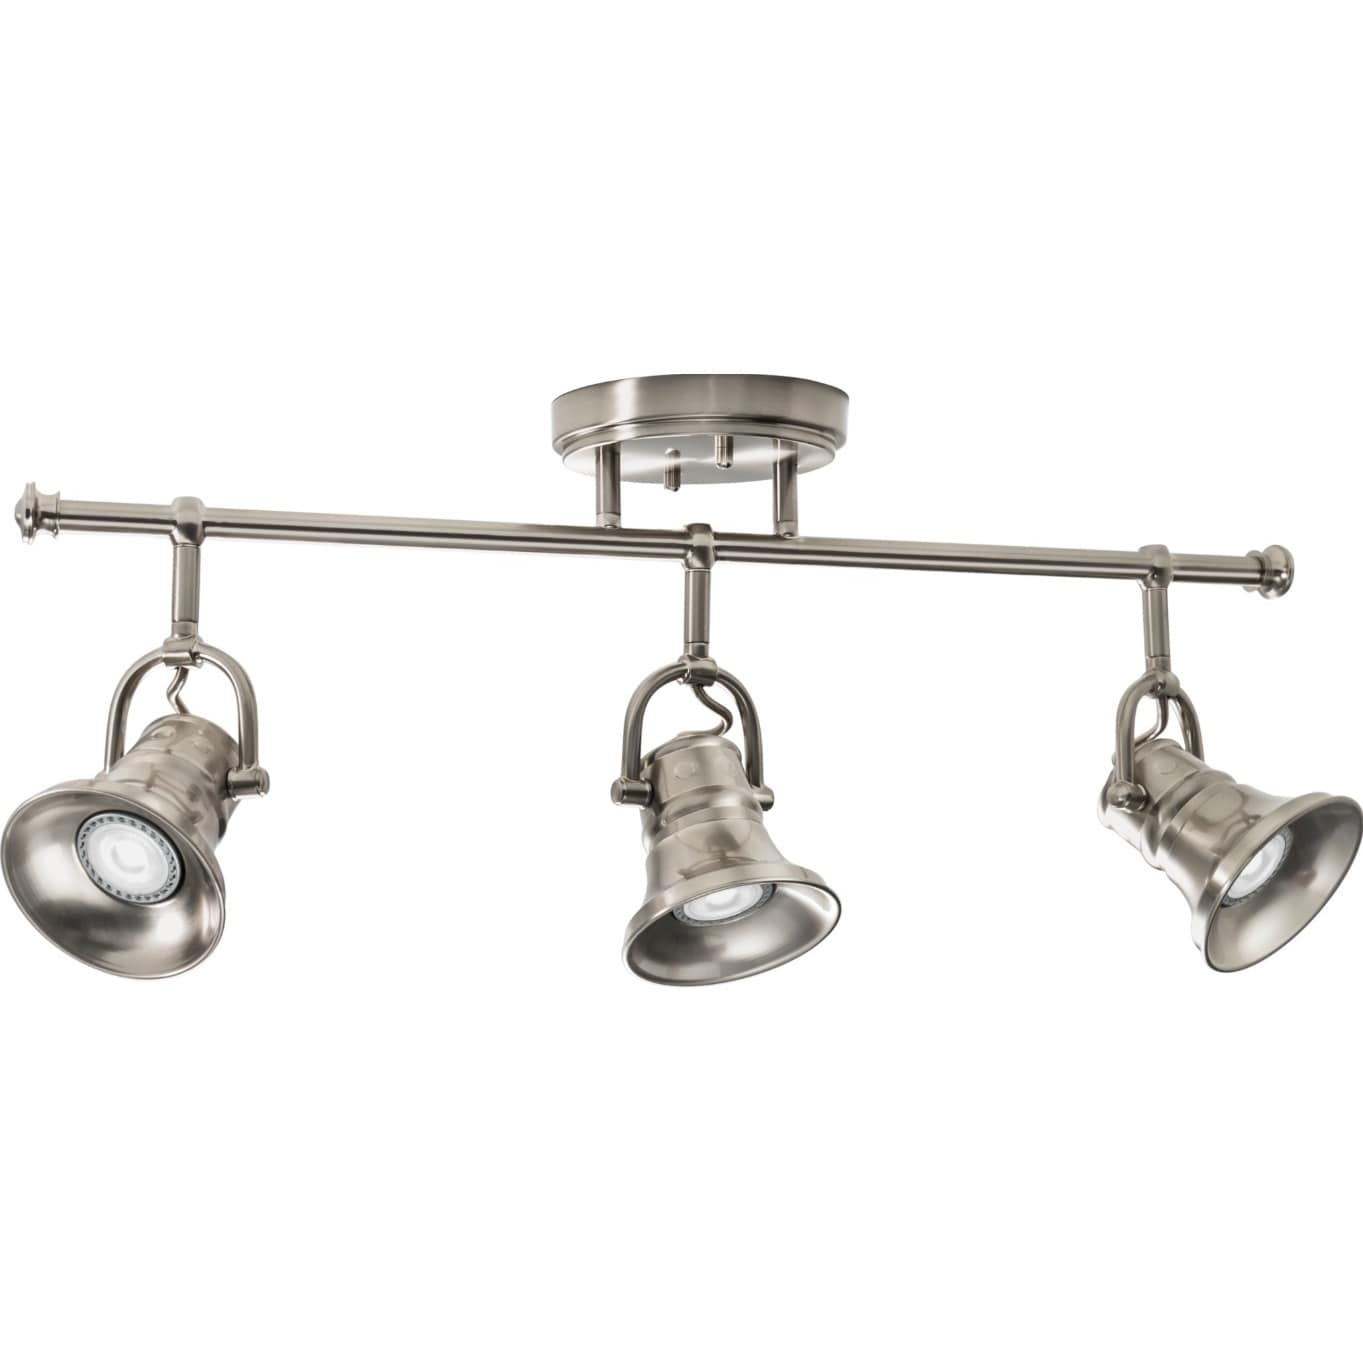 Shop lithonia lighting brushed nickel led 3 head flare skirt fixed shop lithonia lighting brushed nickel led 3 head flare skirt fixed track light kit free shipping today overstock 14681688 mozeypictures Image collections